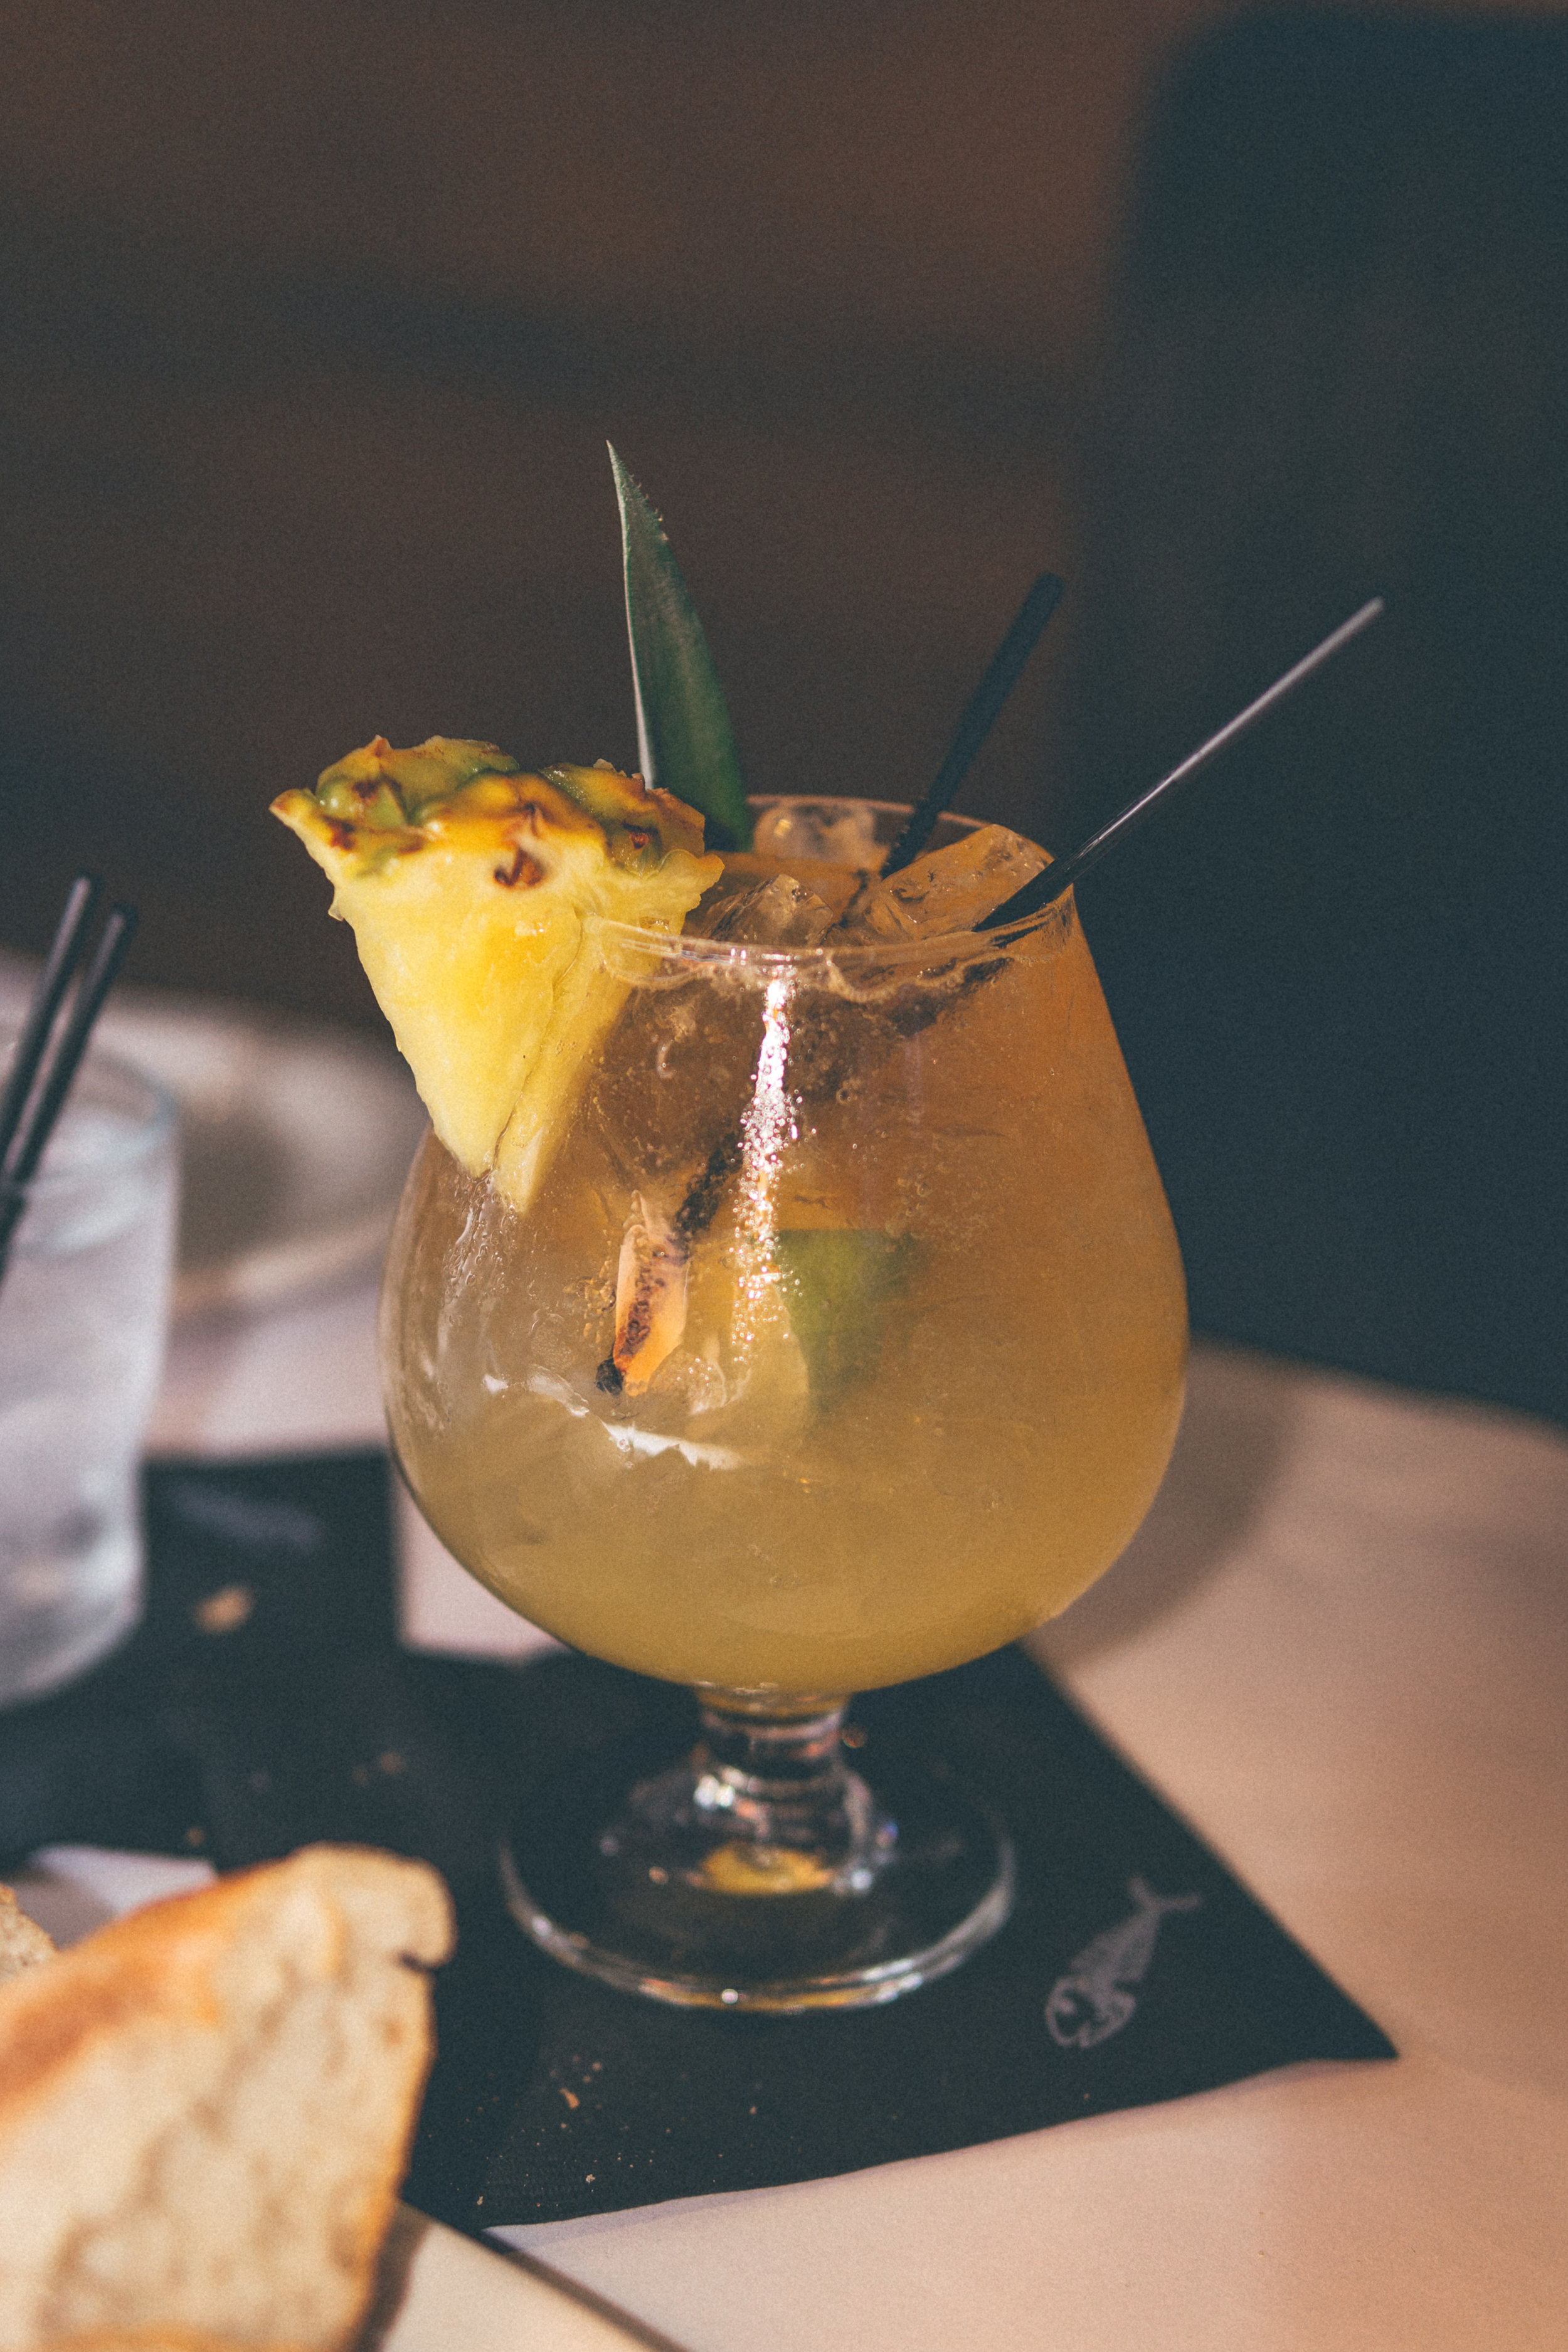 Coral Reef Punch: Bacardi Maestro Rum, Malibu Coconut Rum, passion fruit, house-made vanilla bean simple syrup, fresh-squeezed orange & pineapple juice.